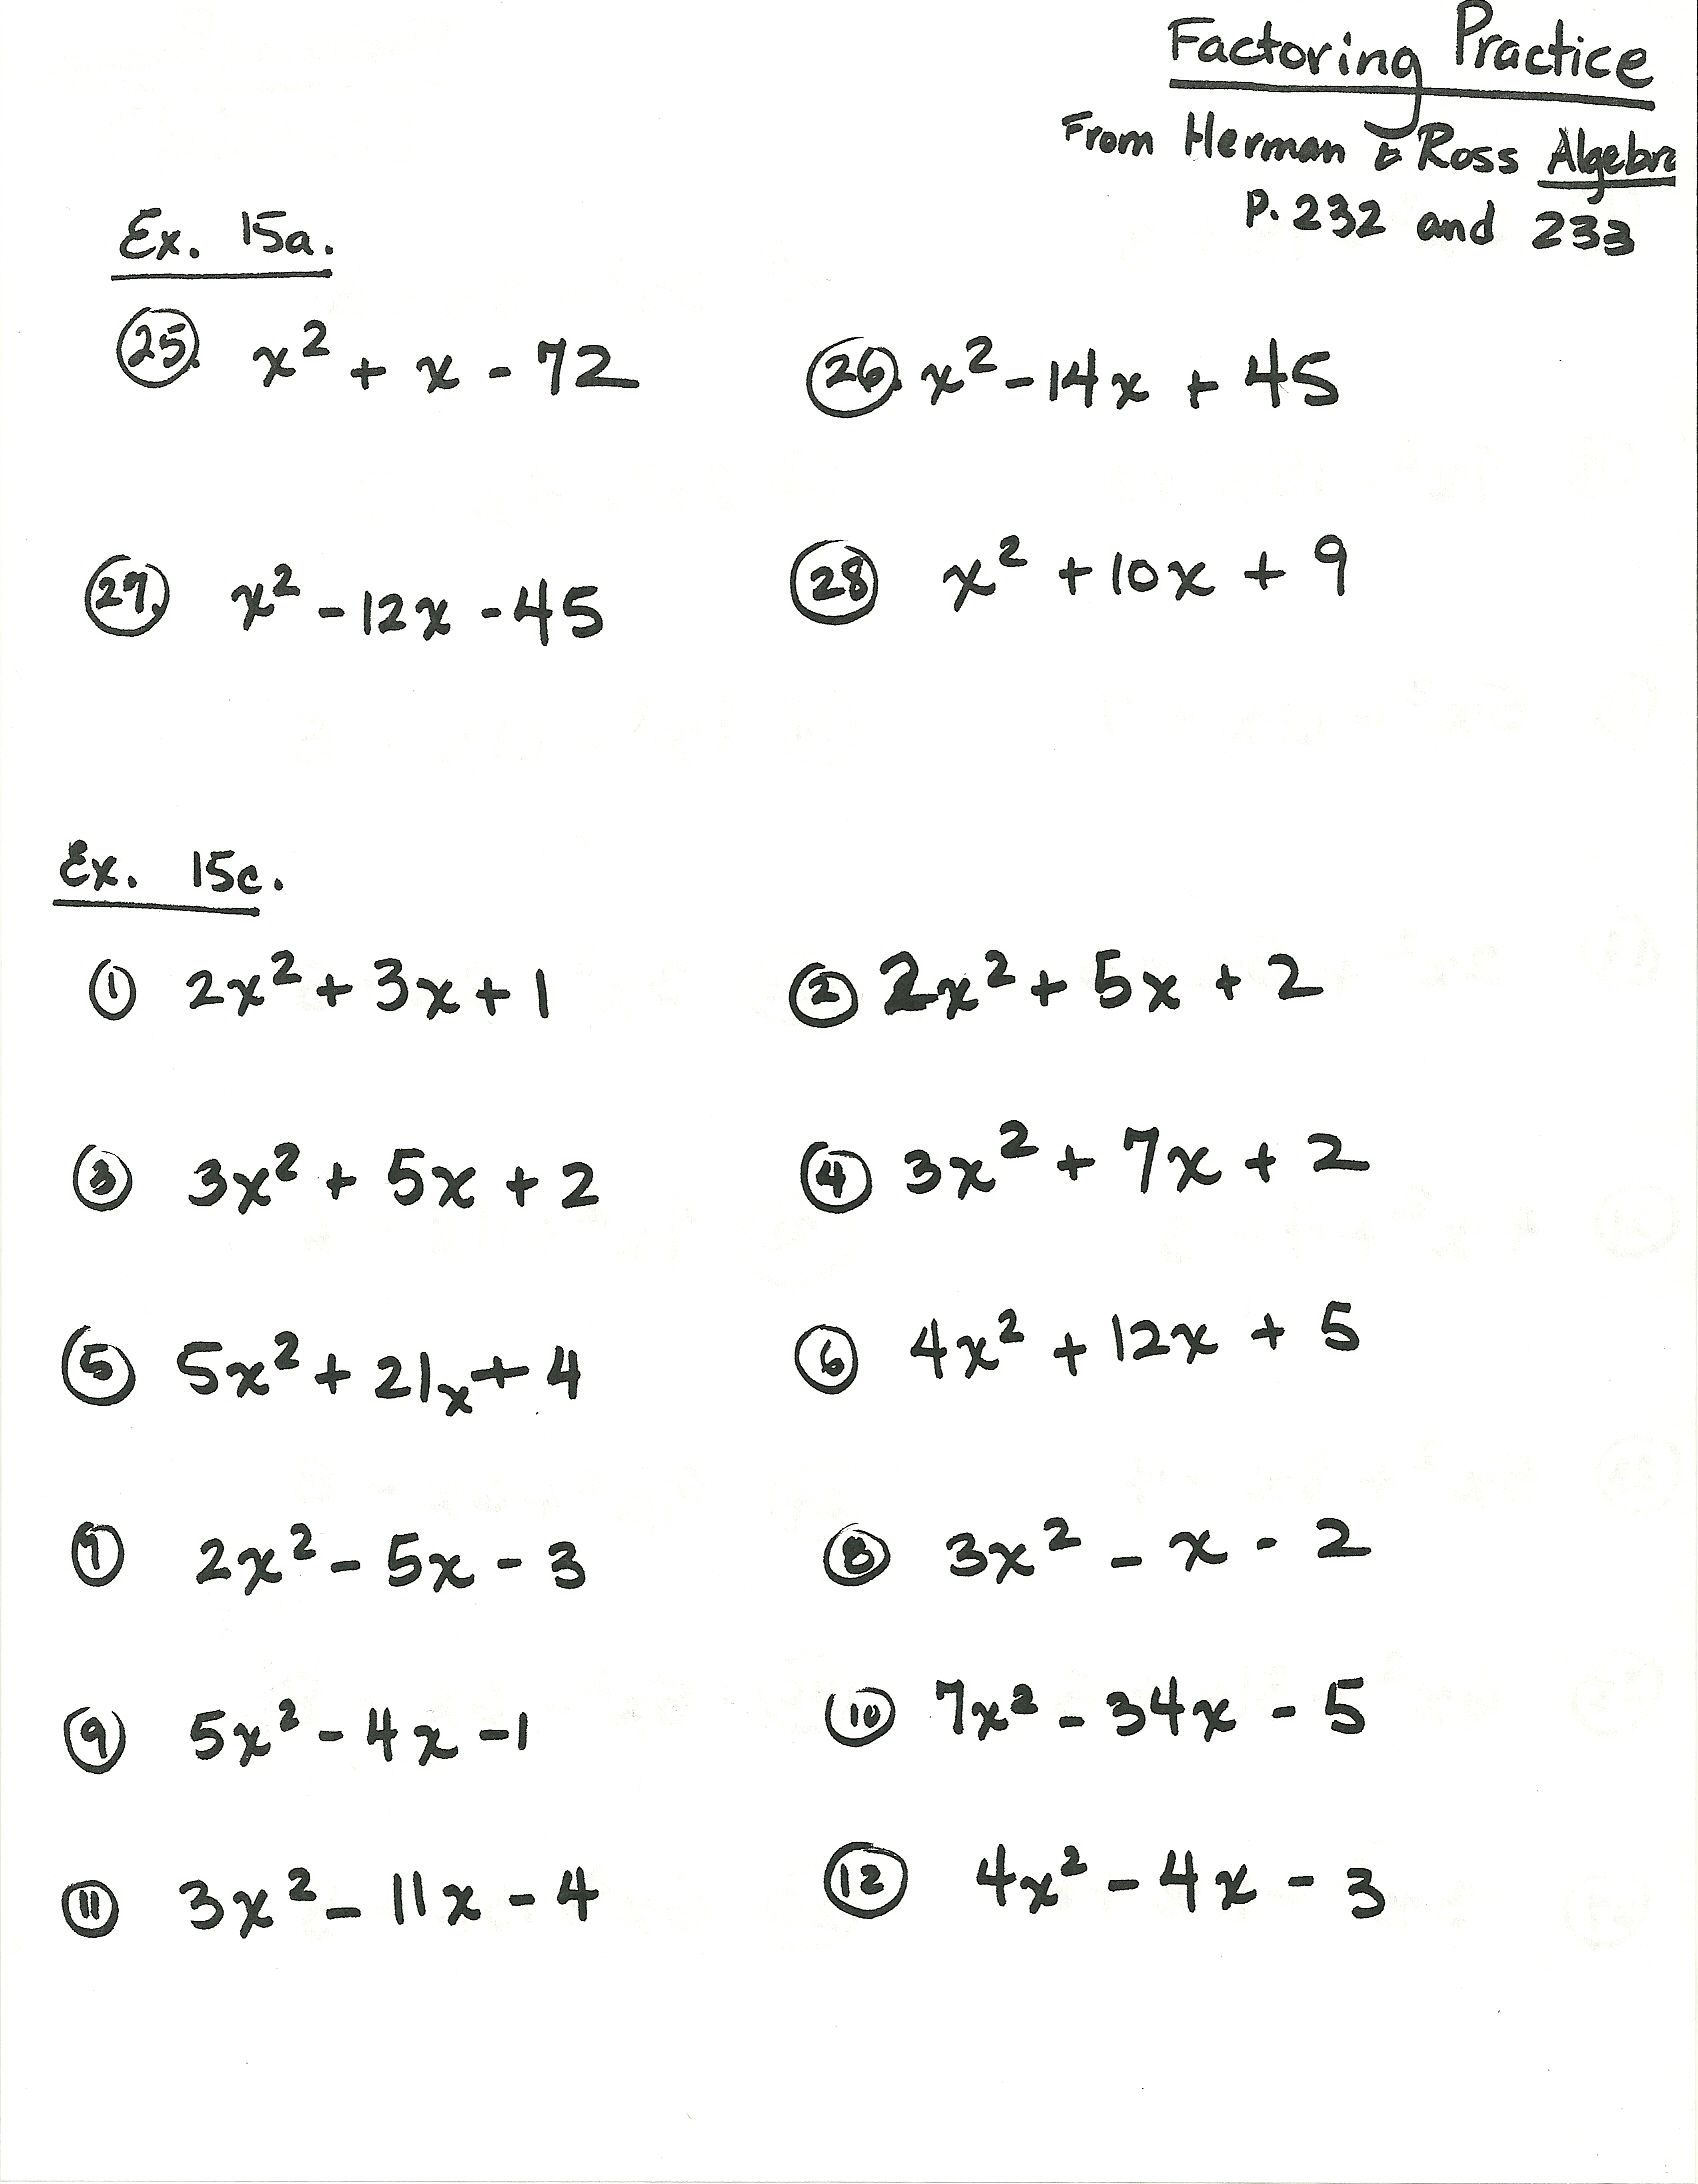 Herman And Ross Factoring Practice1